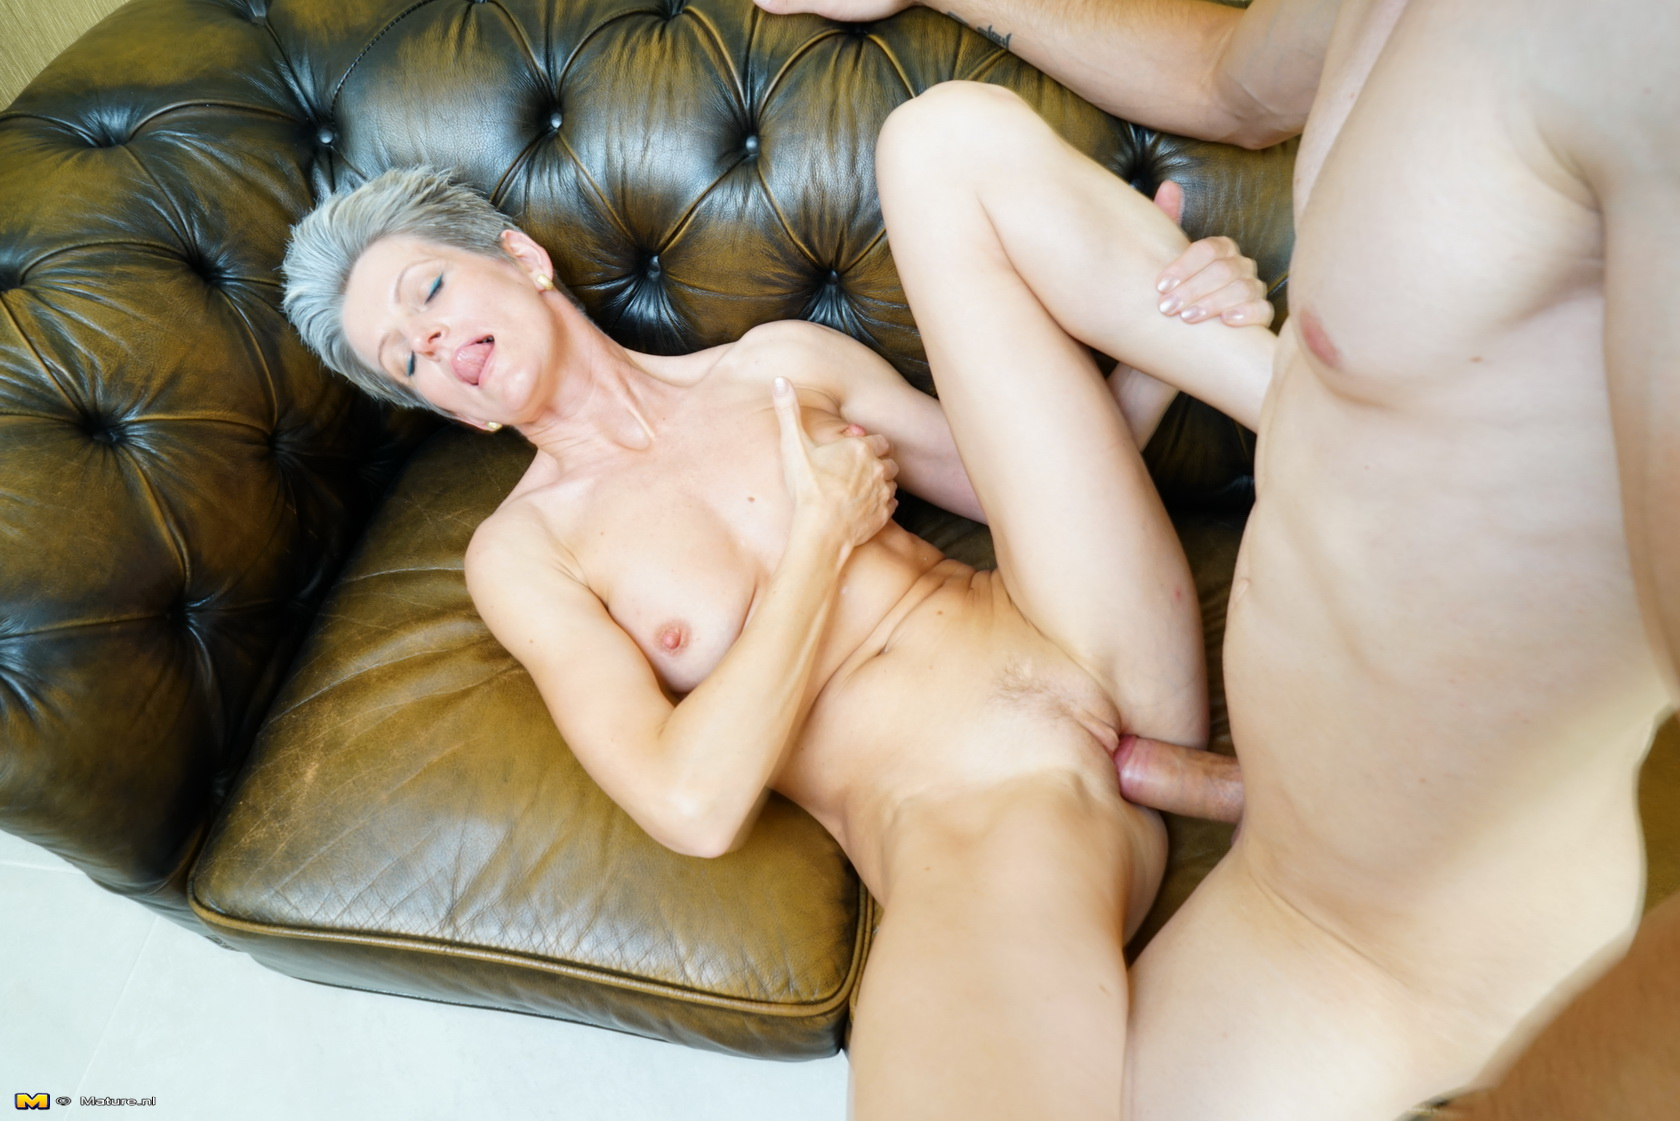 young dude gets his first blowjob from granny